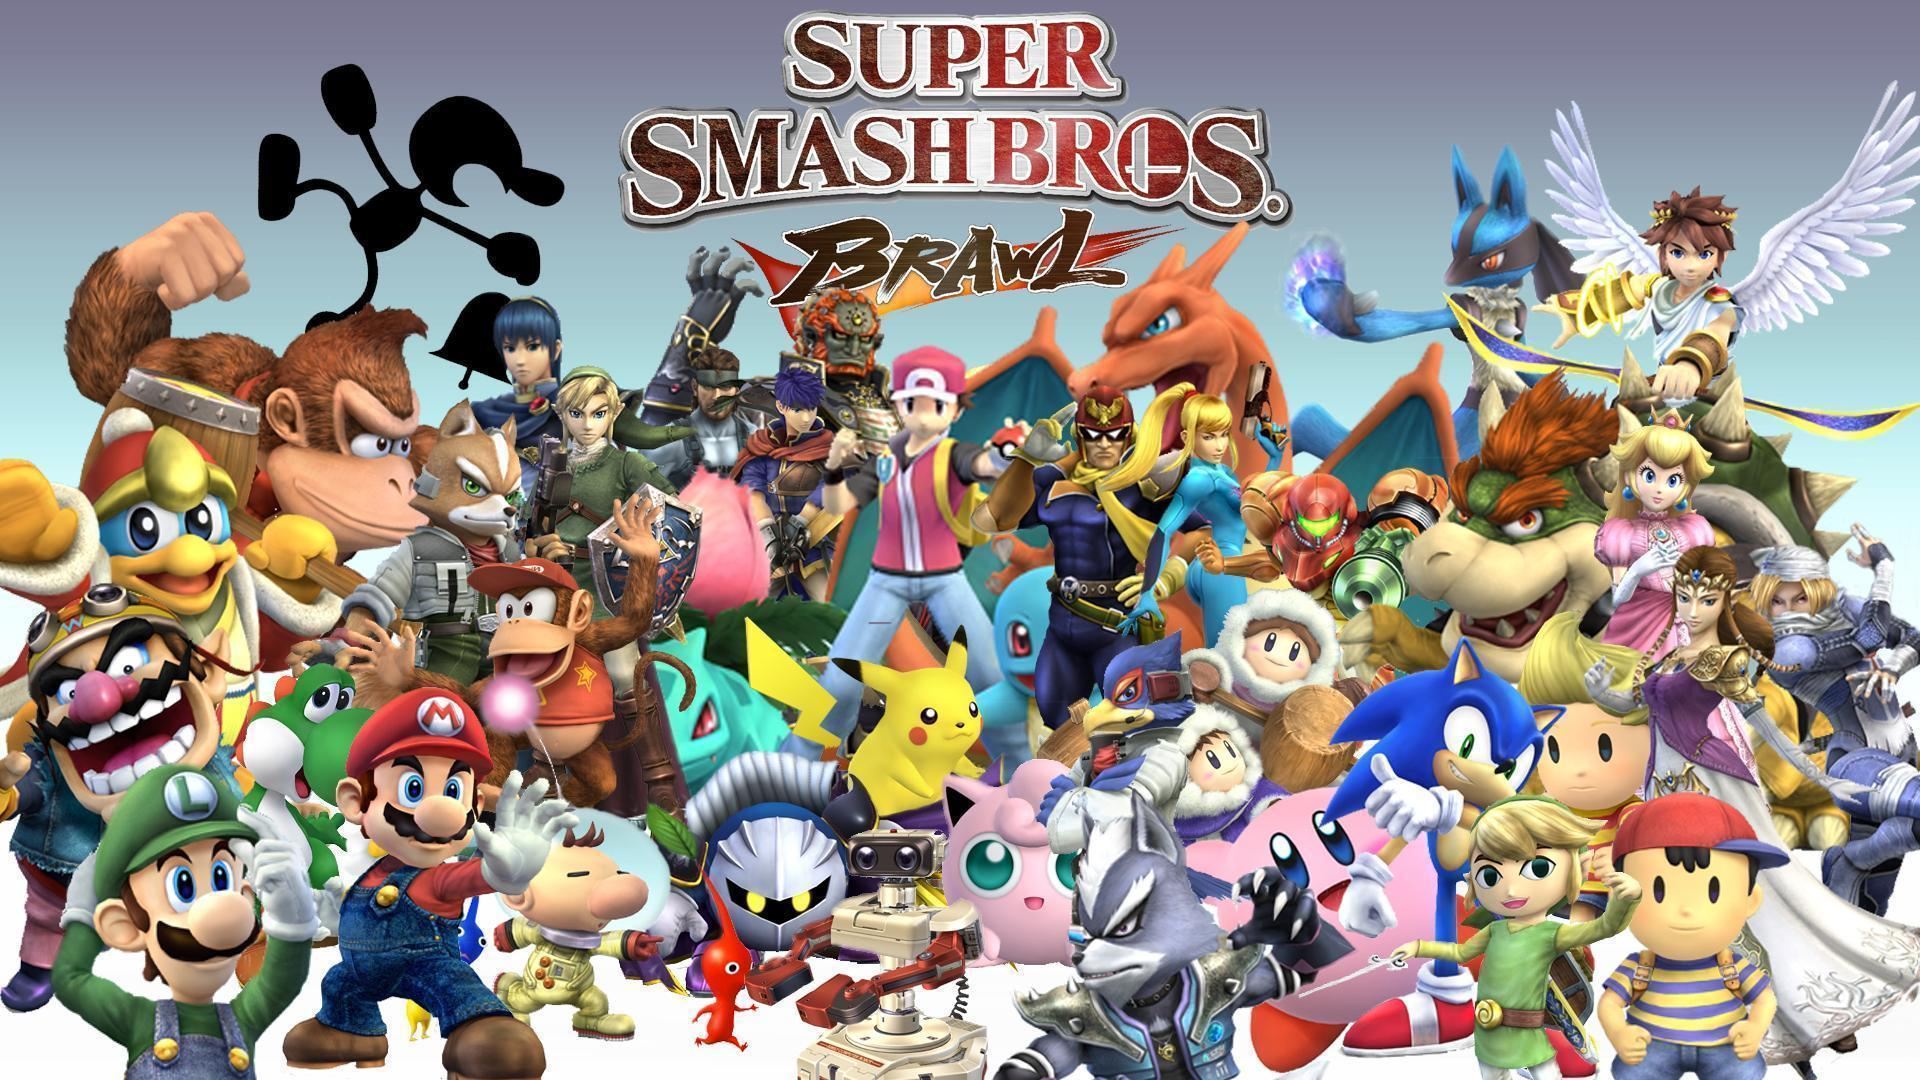 Super Smash Bros Wallpapers Widescreen